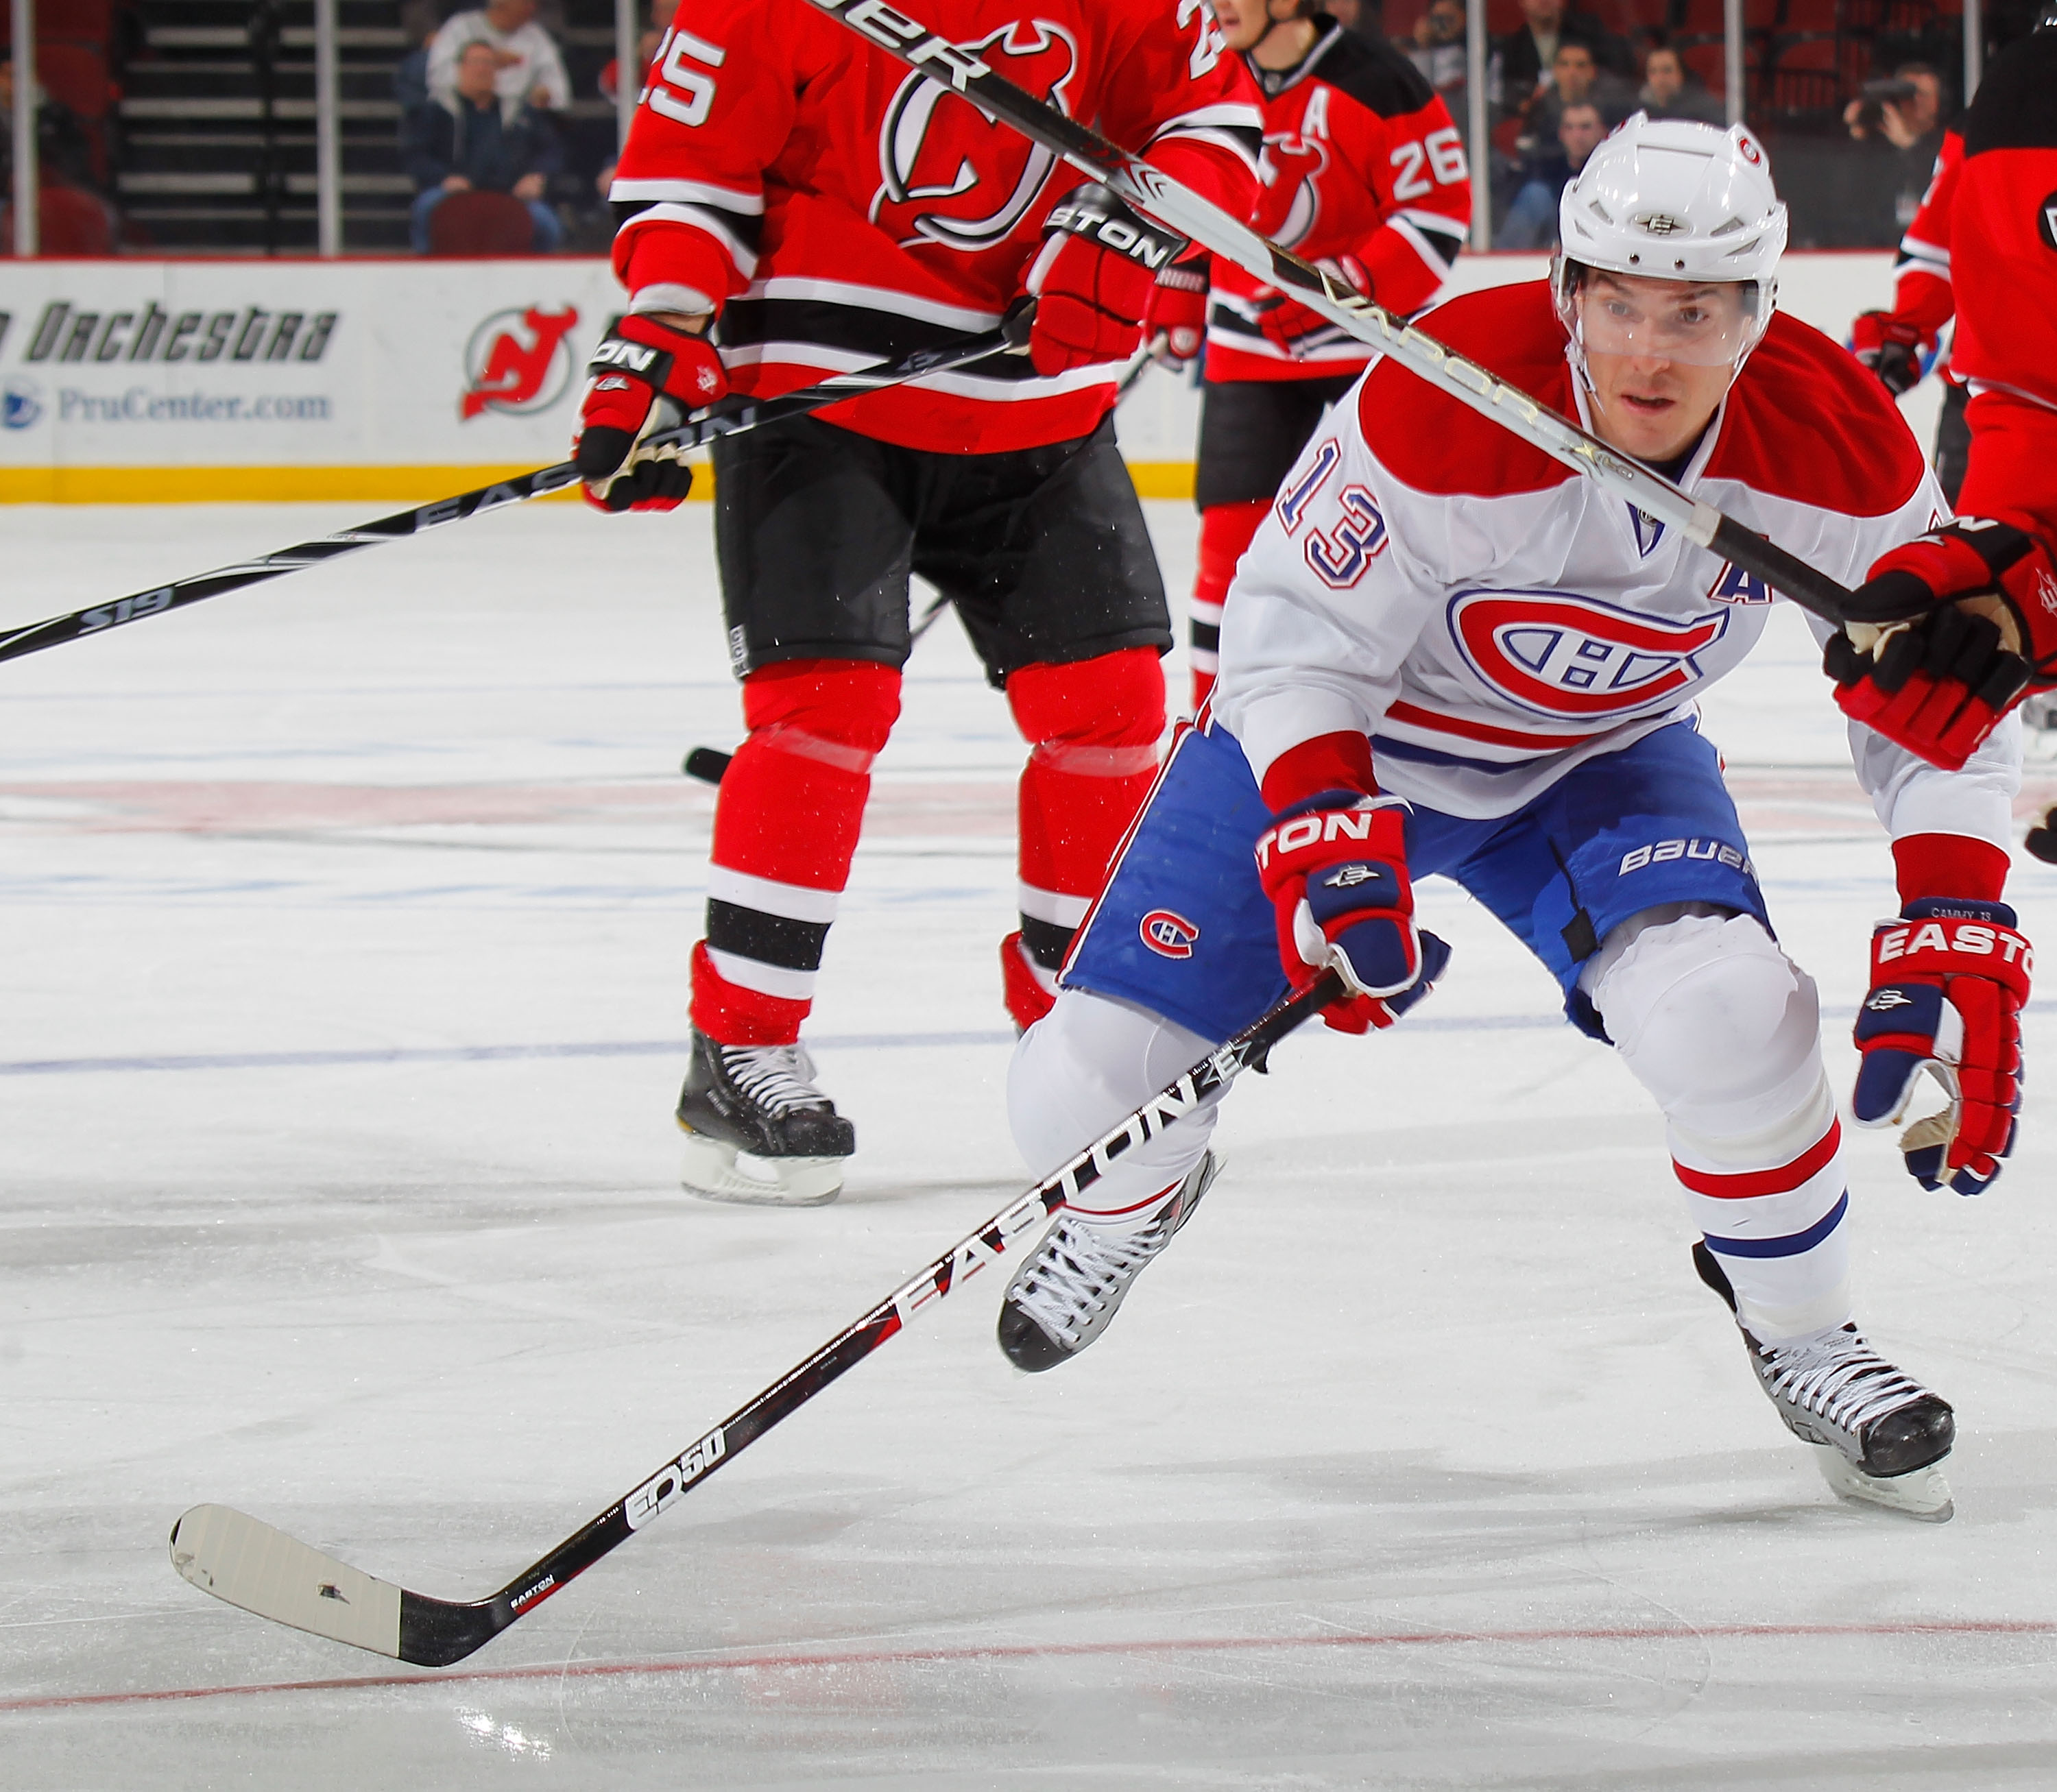 NEWARK, NJ - DECEMBER 02:  Michael Cammalleri #13 of the Montreal Canadiens skates during a hockey game against the New Jersey Devils at the Prudential Center on December 2, 2010 in Newark, New Jersey. The Canadiens won 5-1. (Photo by Paul Bereswill/Getty